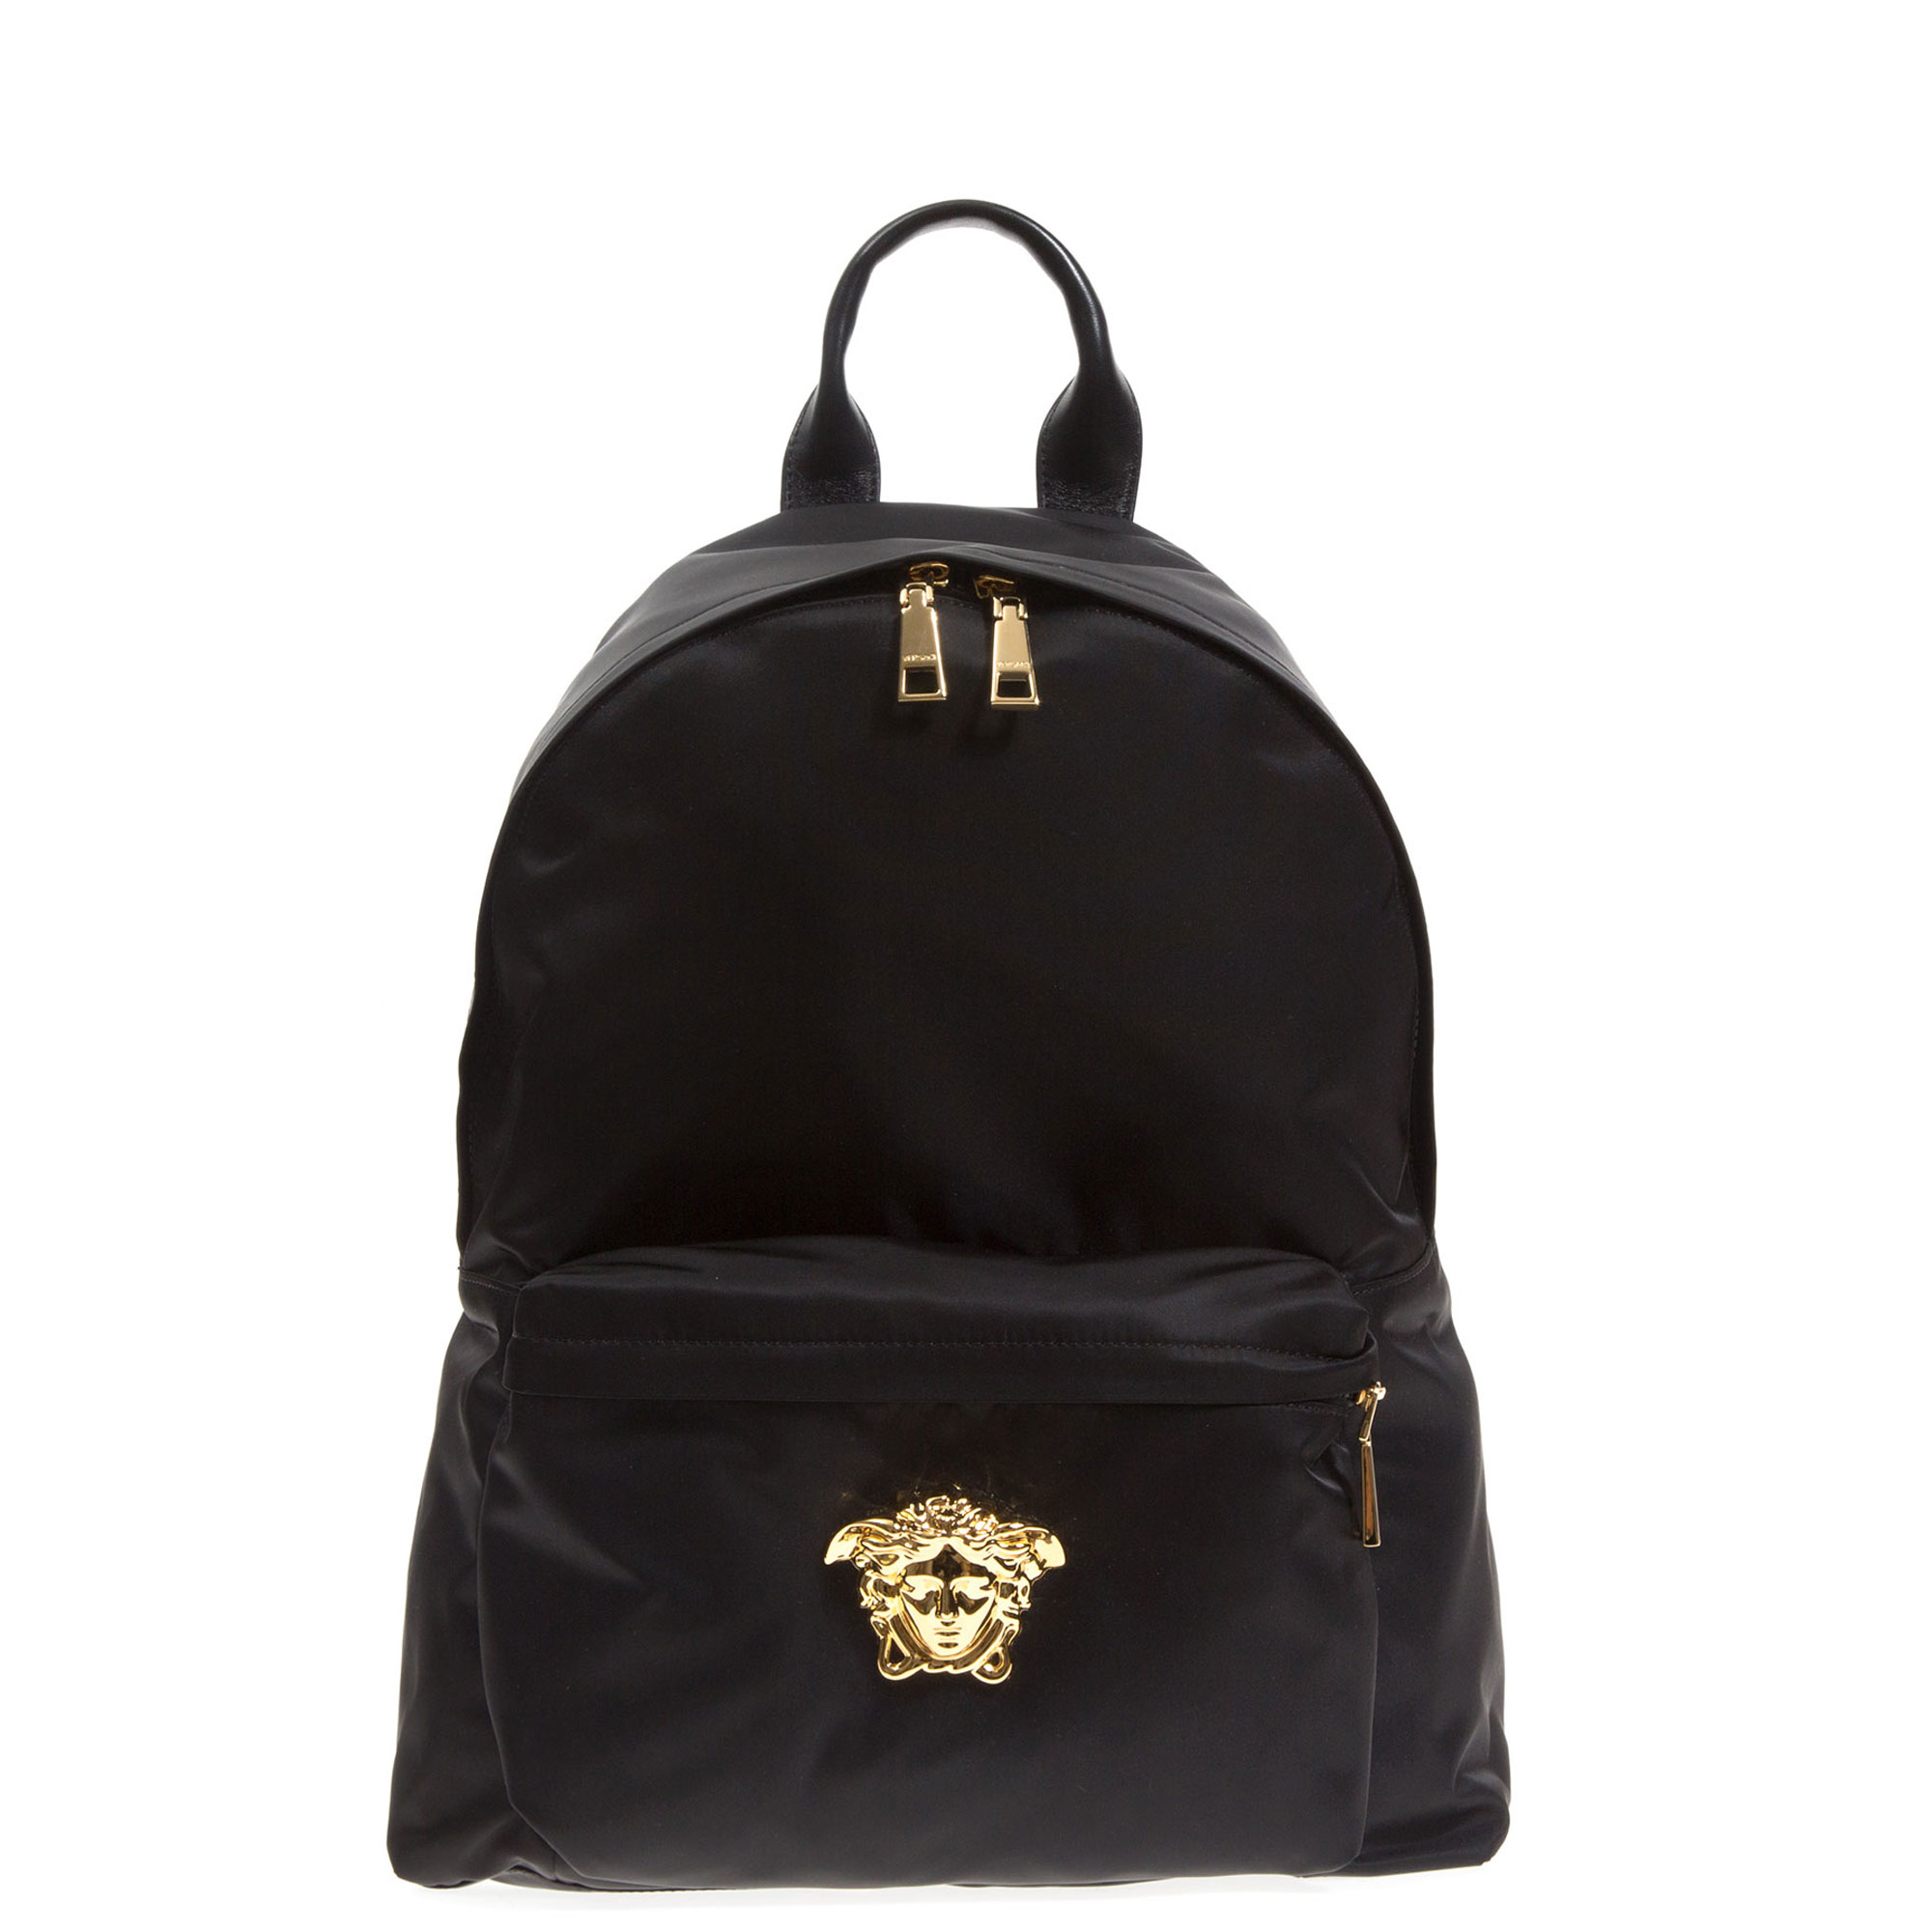 4c9e21dc3a5c Lyst - Versace Medusa Black Backpack in Black